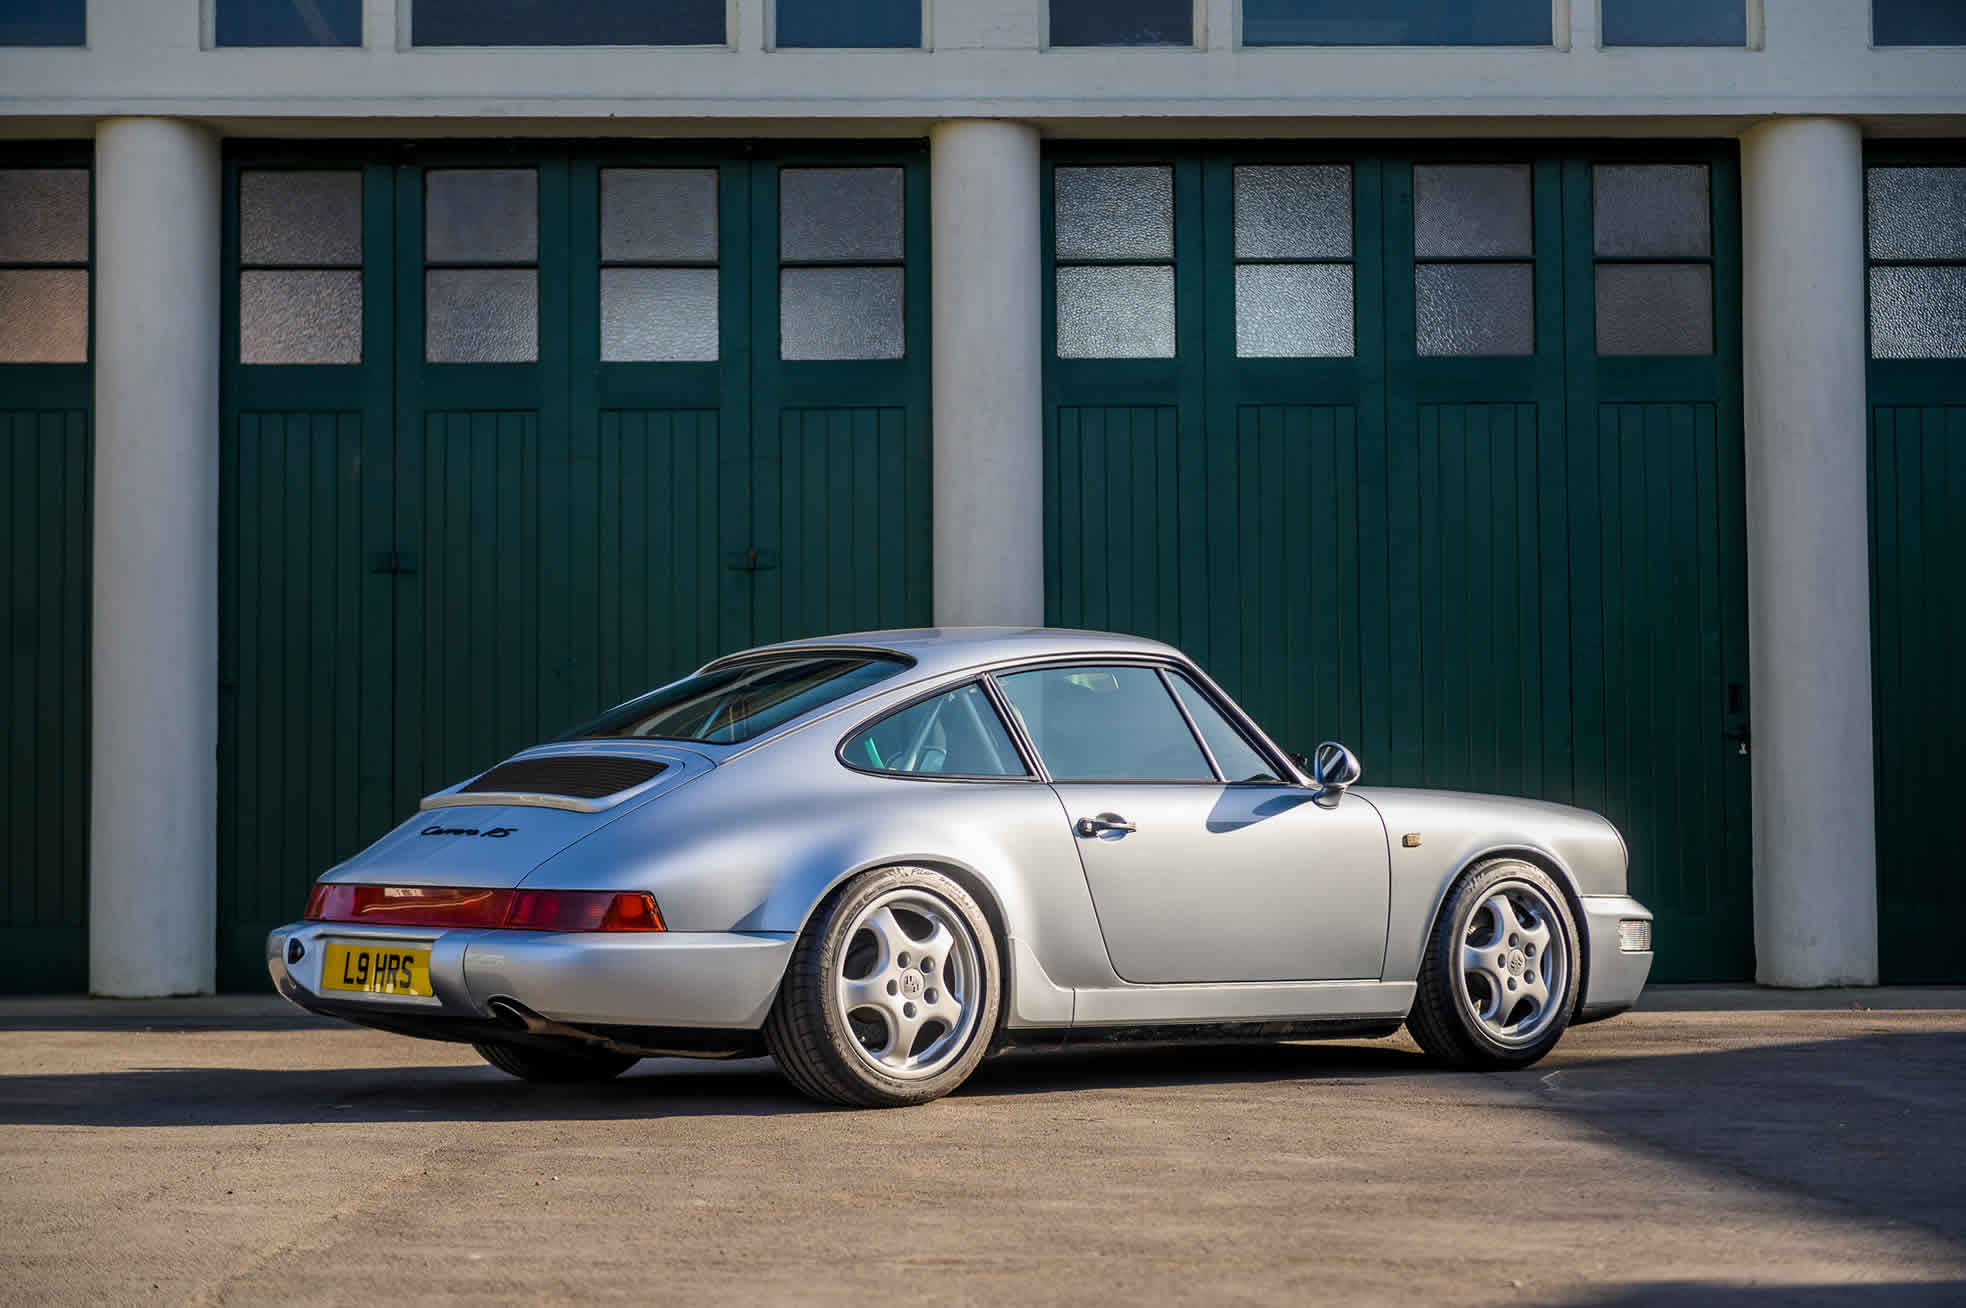 1992 Porsche 964 RS (RHD), for Sale at Sports Purpose, Bicester Heritage, Oxon - rear quarter